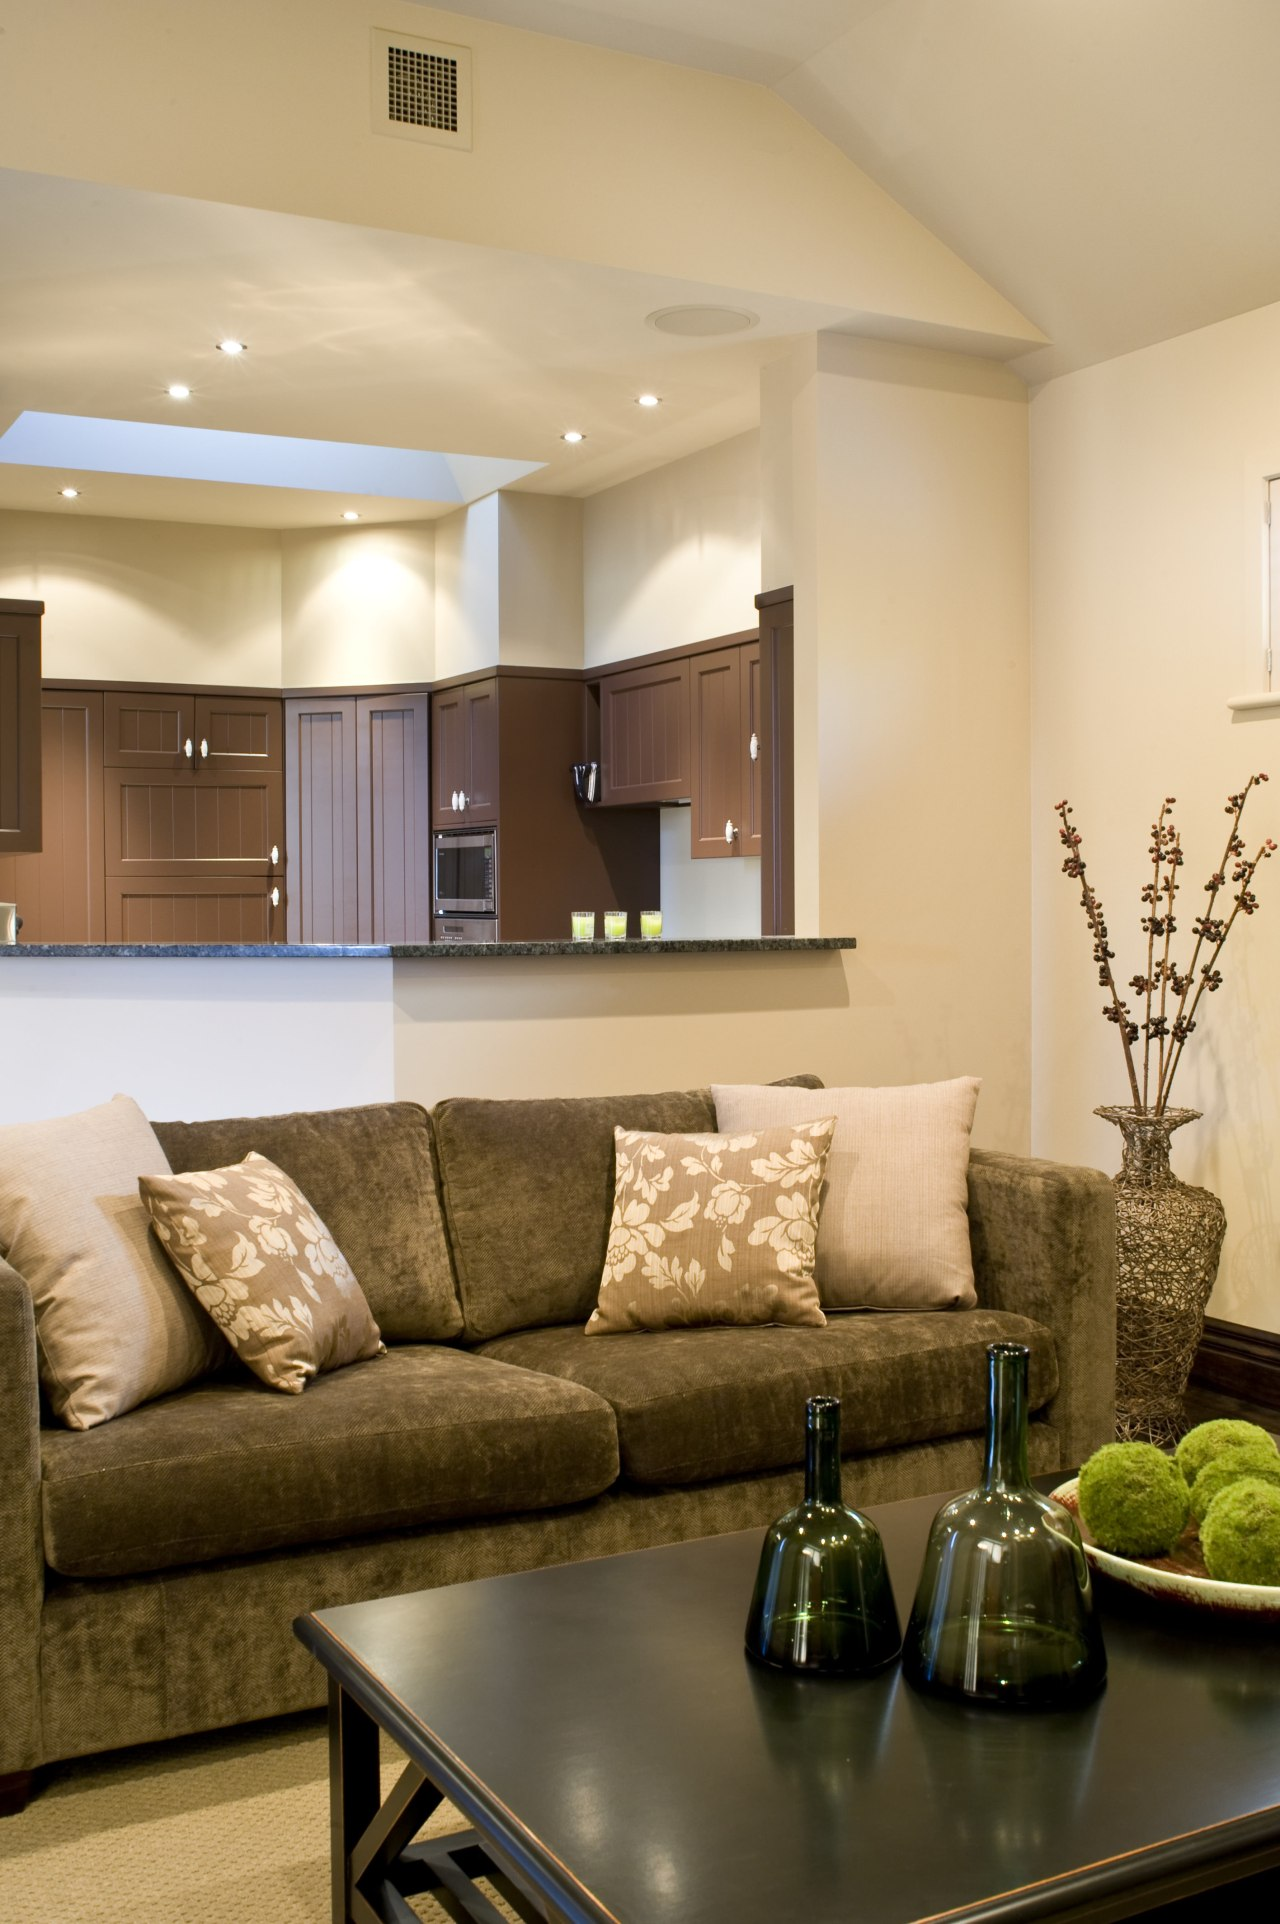 Close up of Lounge & kitchen area ceiling, home, interior design, lighting, living room, room, wall, orange, brown